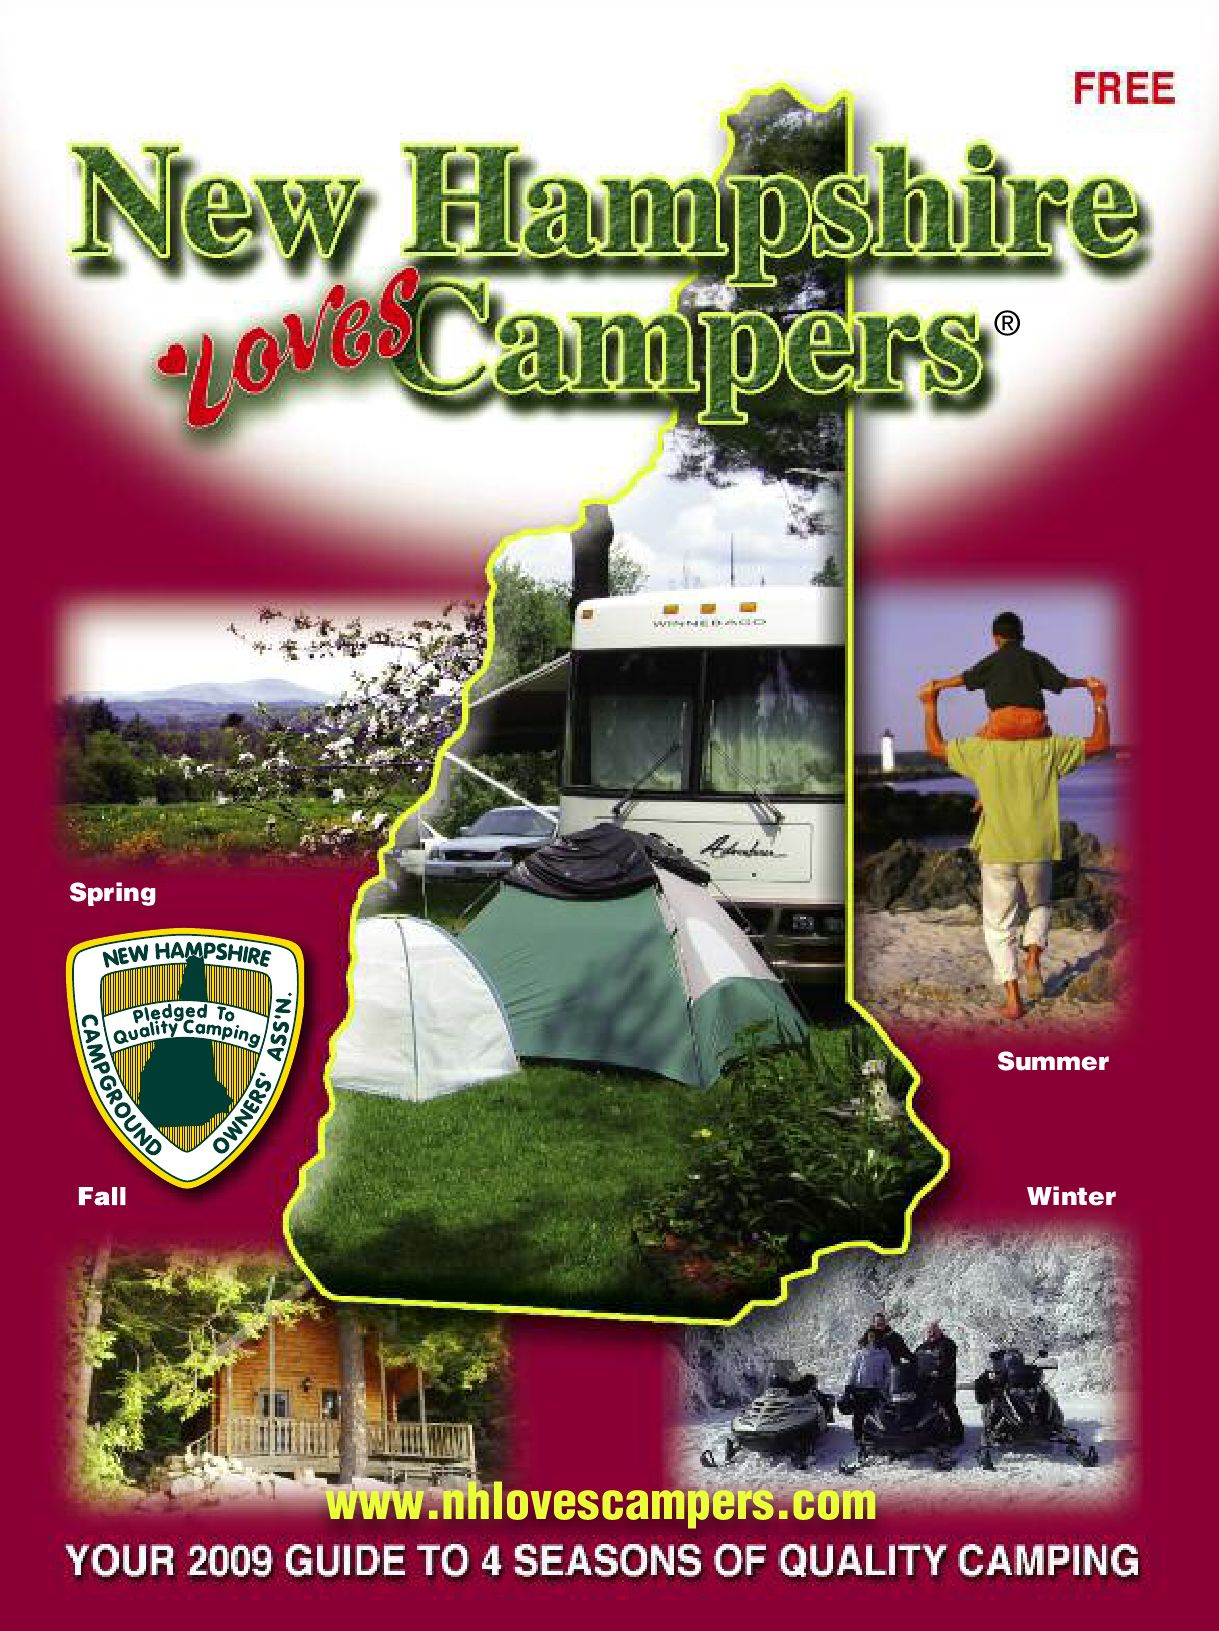 Cottages amp campground rentals riverview cottages campground jackman - Cottages Amp Campground Rentals Riverview Cottages Campground Jackman 20